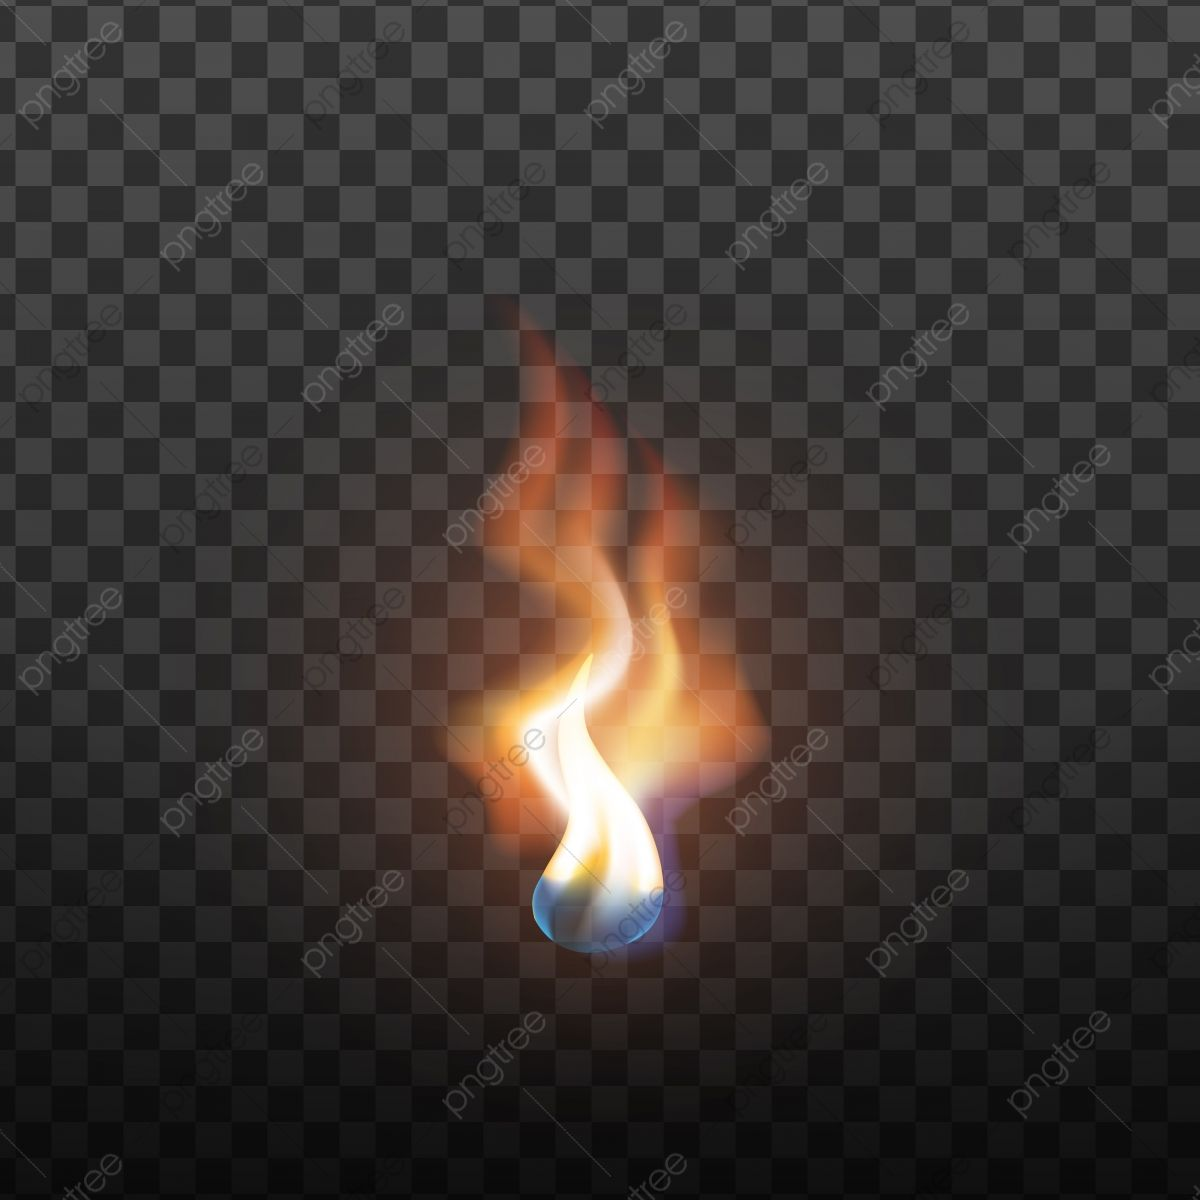 Realistic Candlelight Brush Fire Element Vector Realistic Candlelight Fire Png And Vector With Transparent Background For Free Download Fire Element Brush Fire Candlelight